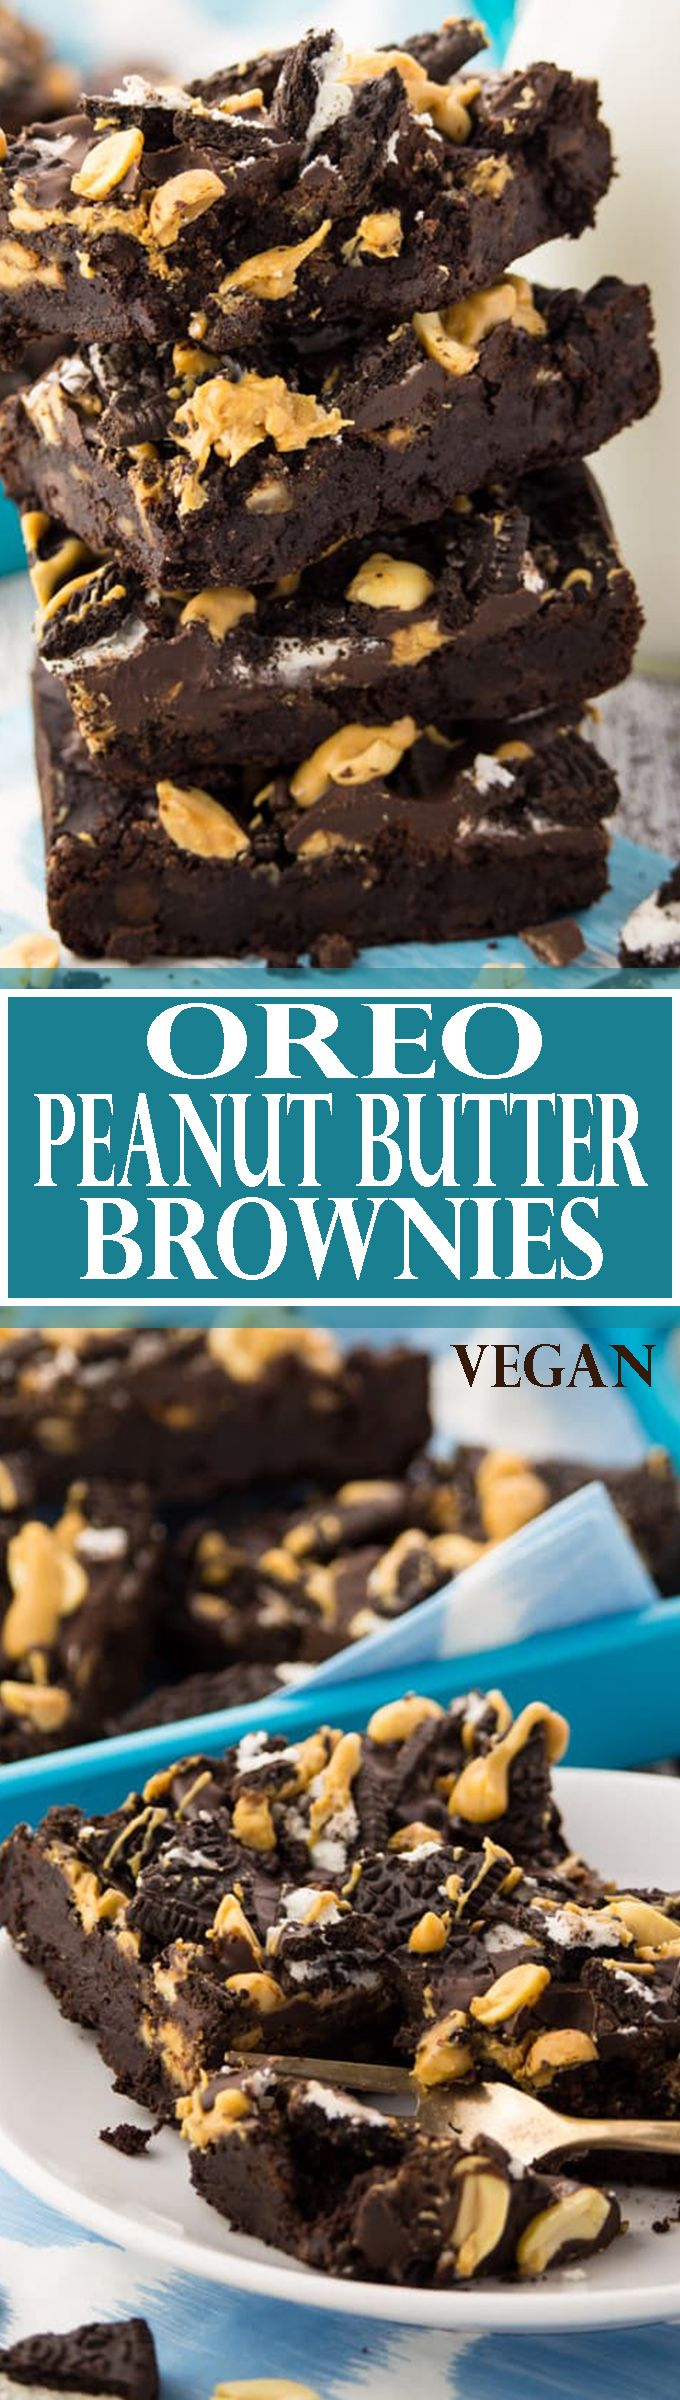 These vegan Oreo peanut butter brownies are super chocolatey, fudgy, and incredibly delicious! One of my favorite vegan desserts or vegan recipes in general! SO good! <3 | veganheaven.org